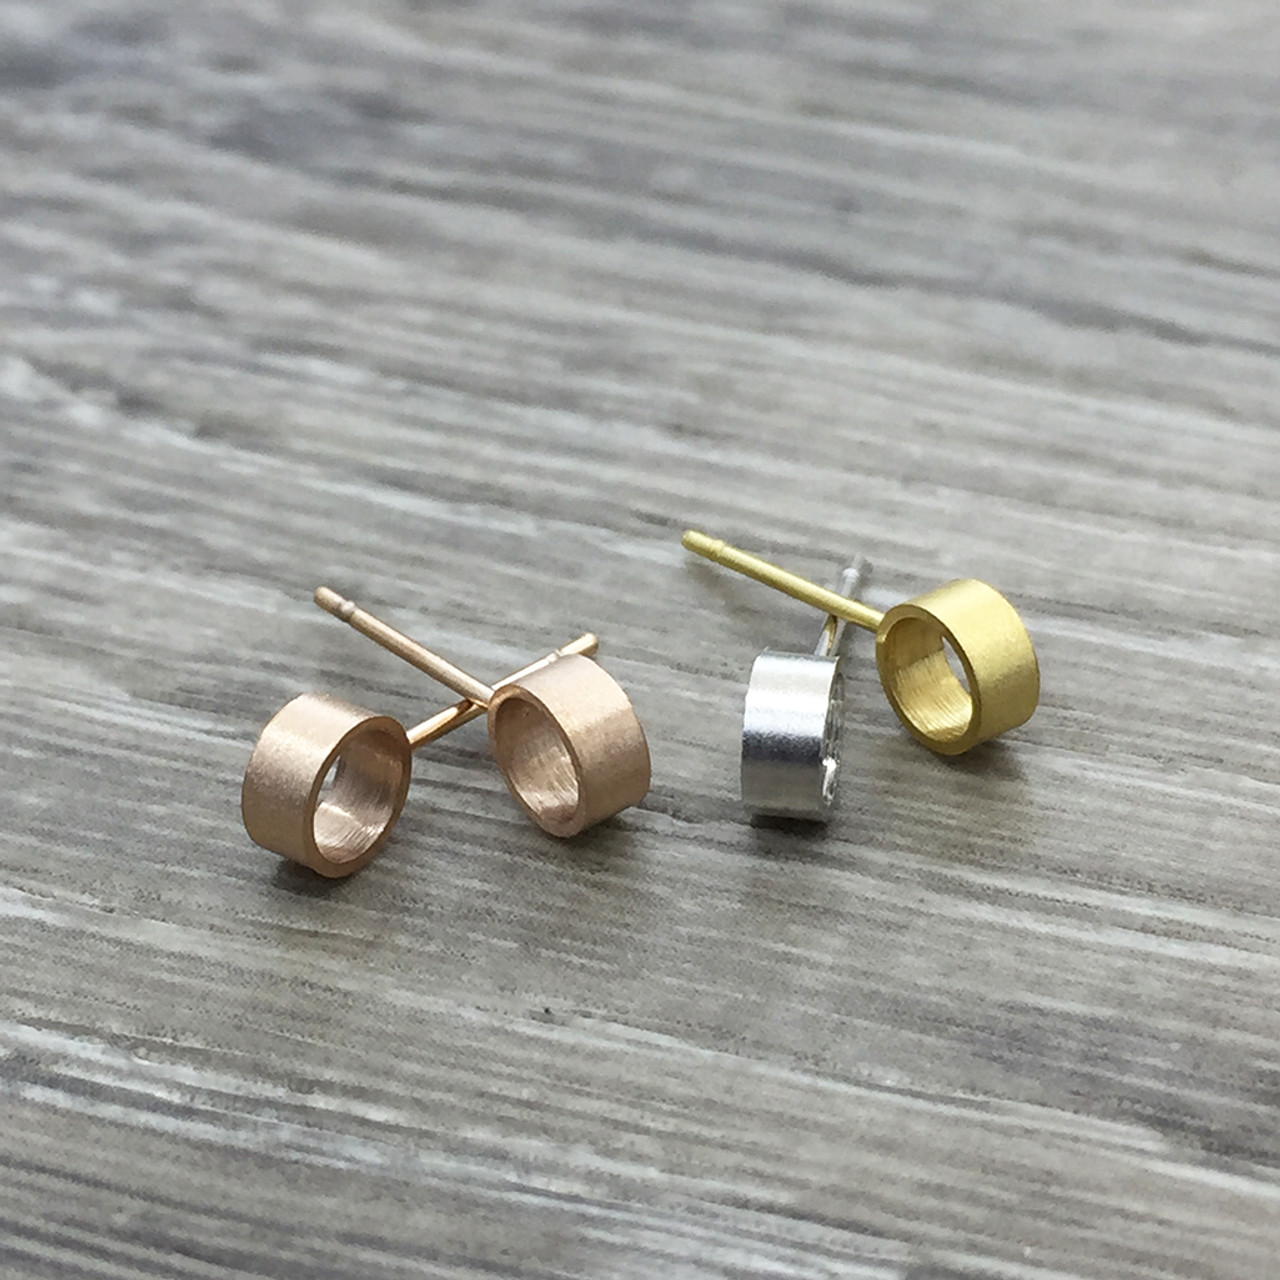 b3bbdefd6035 Brushed 3D circle earring - FAB Accessories Inc.